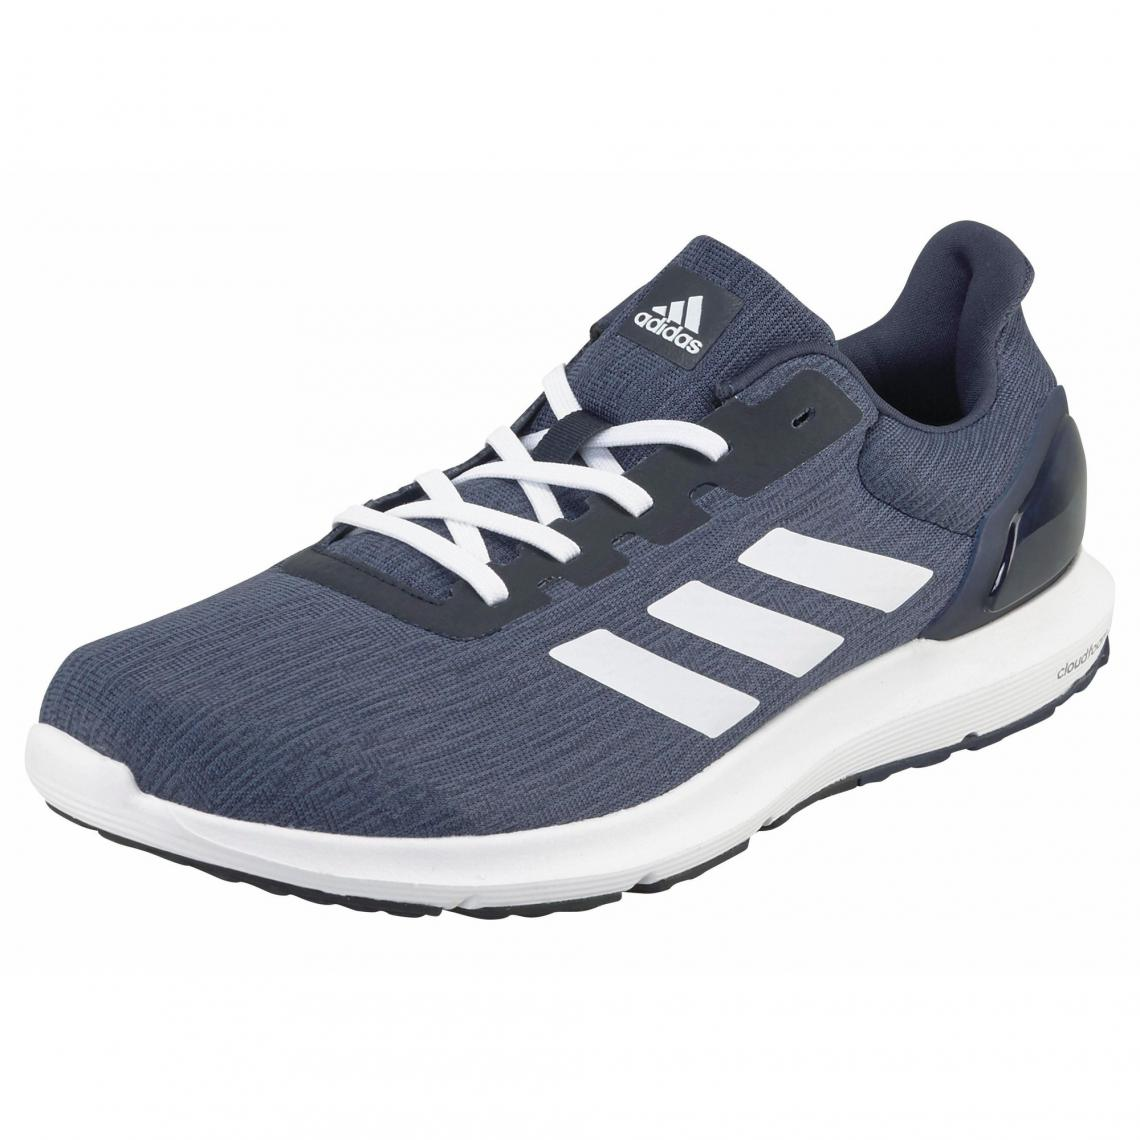 new styles 1fc51 25817 Basket running Cosmic 2 W adidas Performance pour homme - Marine - Blanc  Adidas Performance Homme